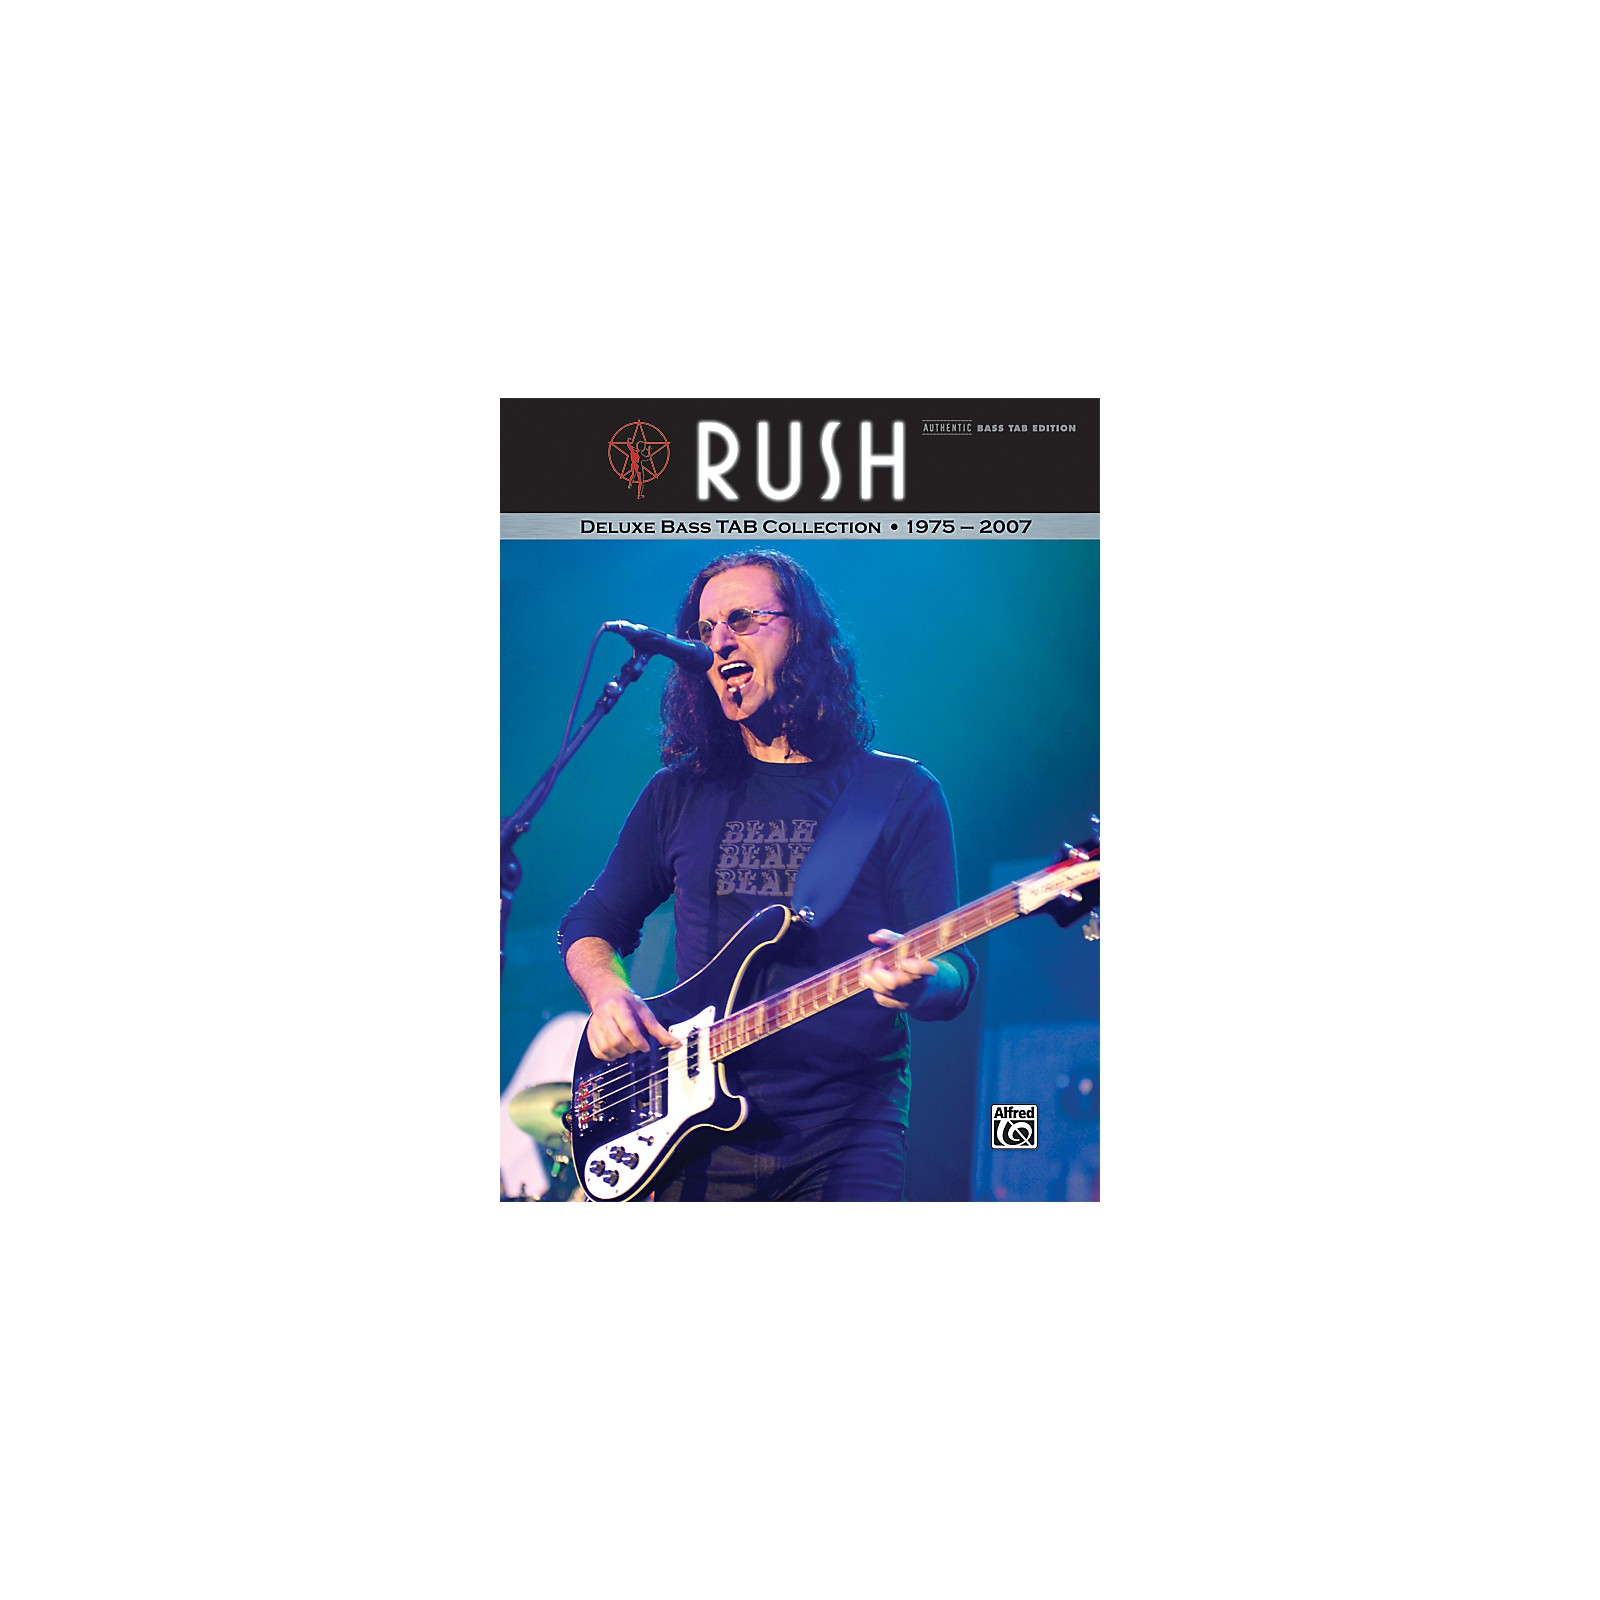 Alfred Rush - Deluxe Bass Tab Collection 1975-2007